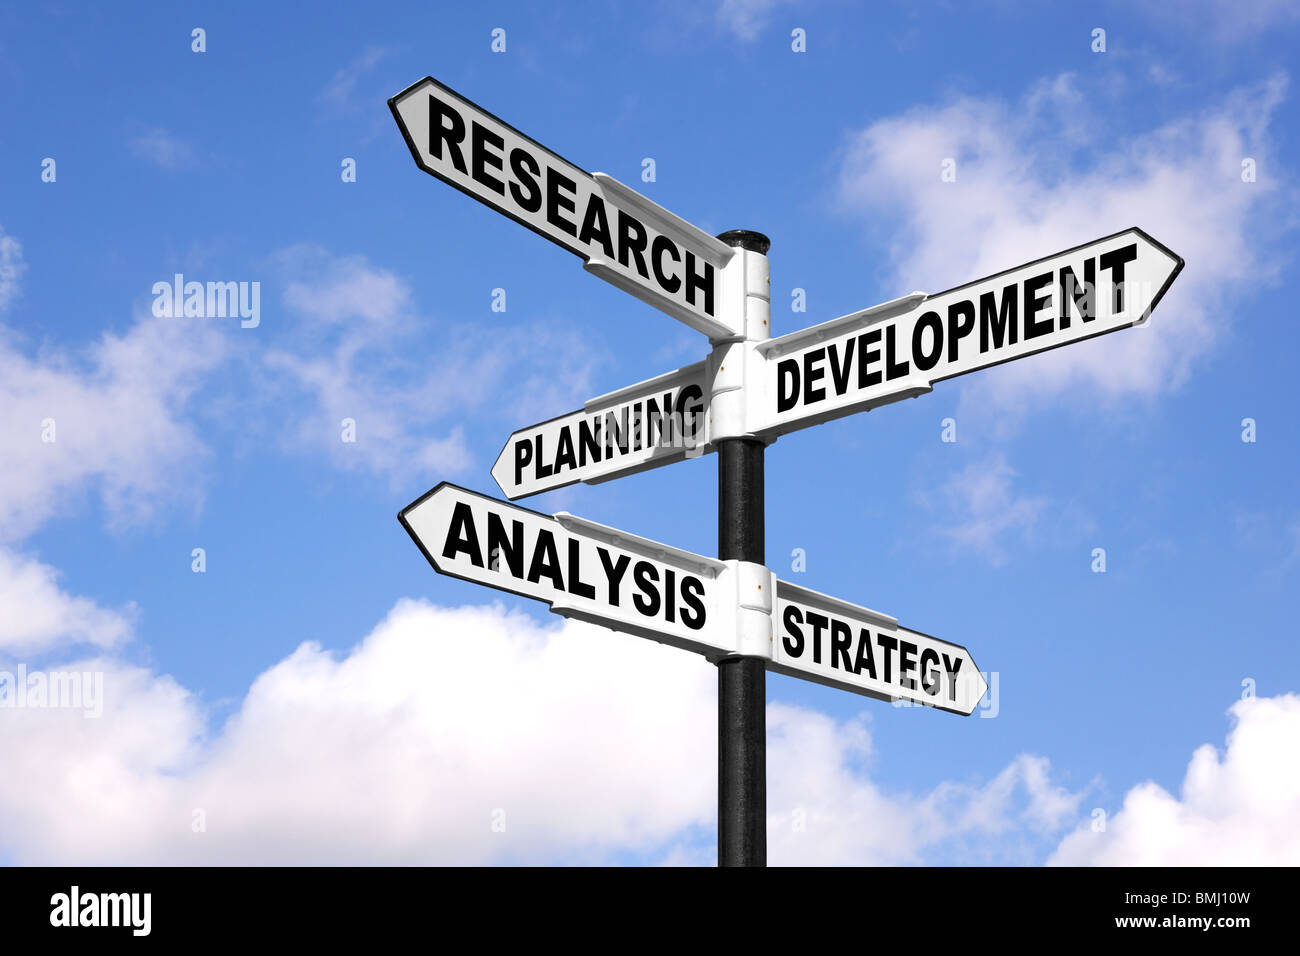 Research and Development concept signpost against a blue cloudy sky - Stock Image